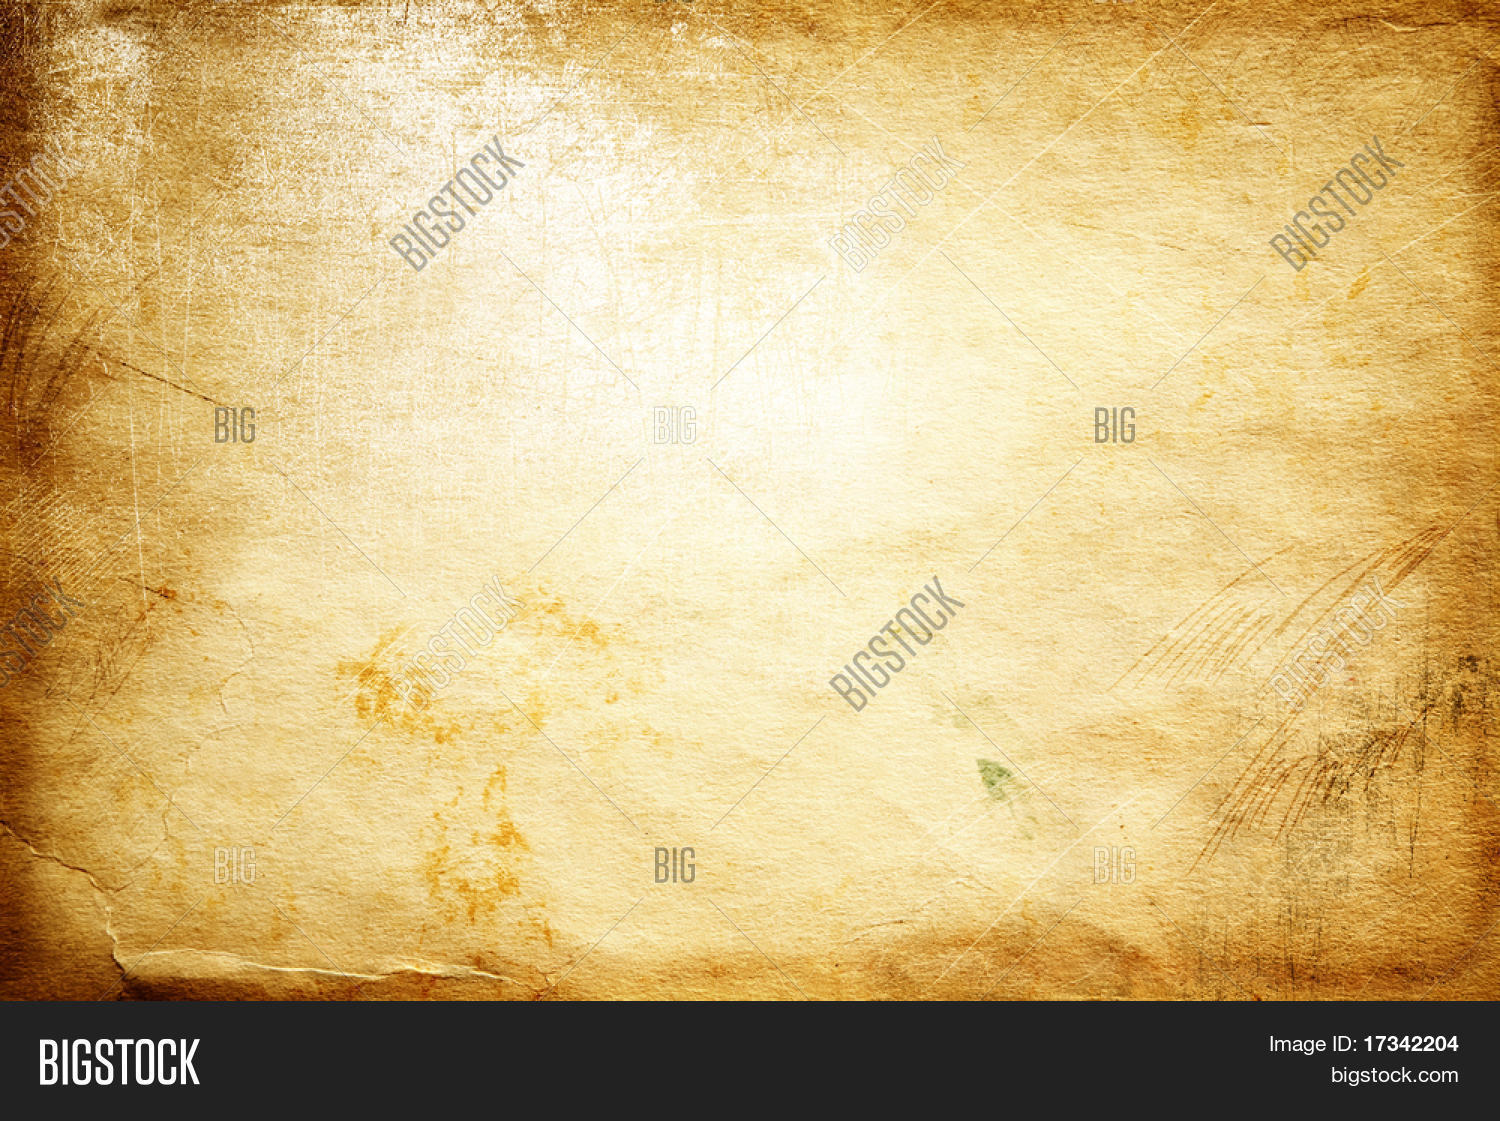 Vintage Background Image Photo Free Trial